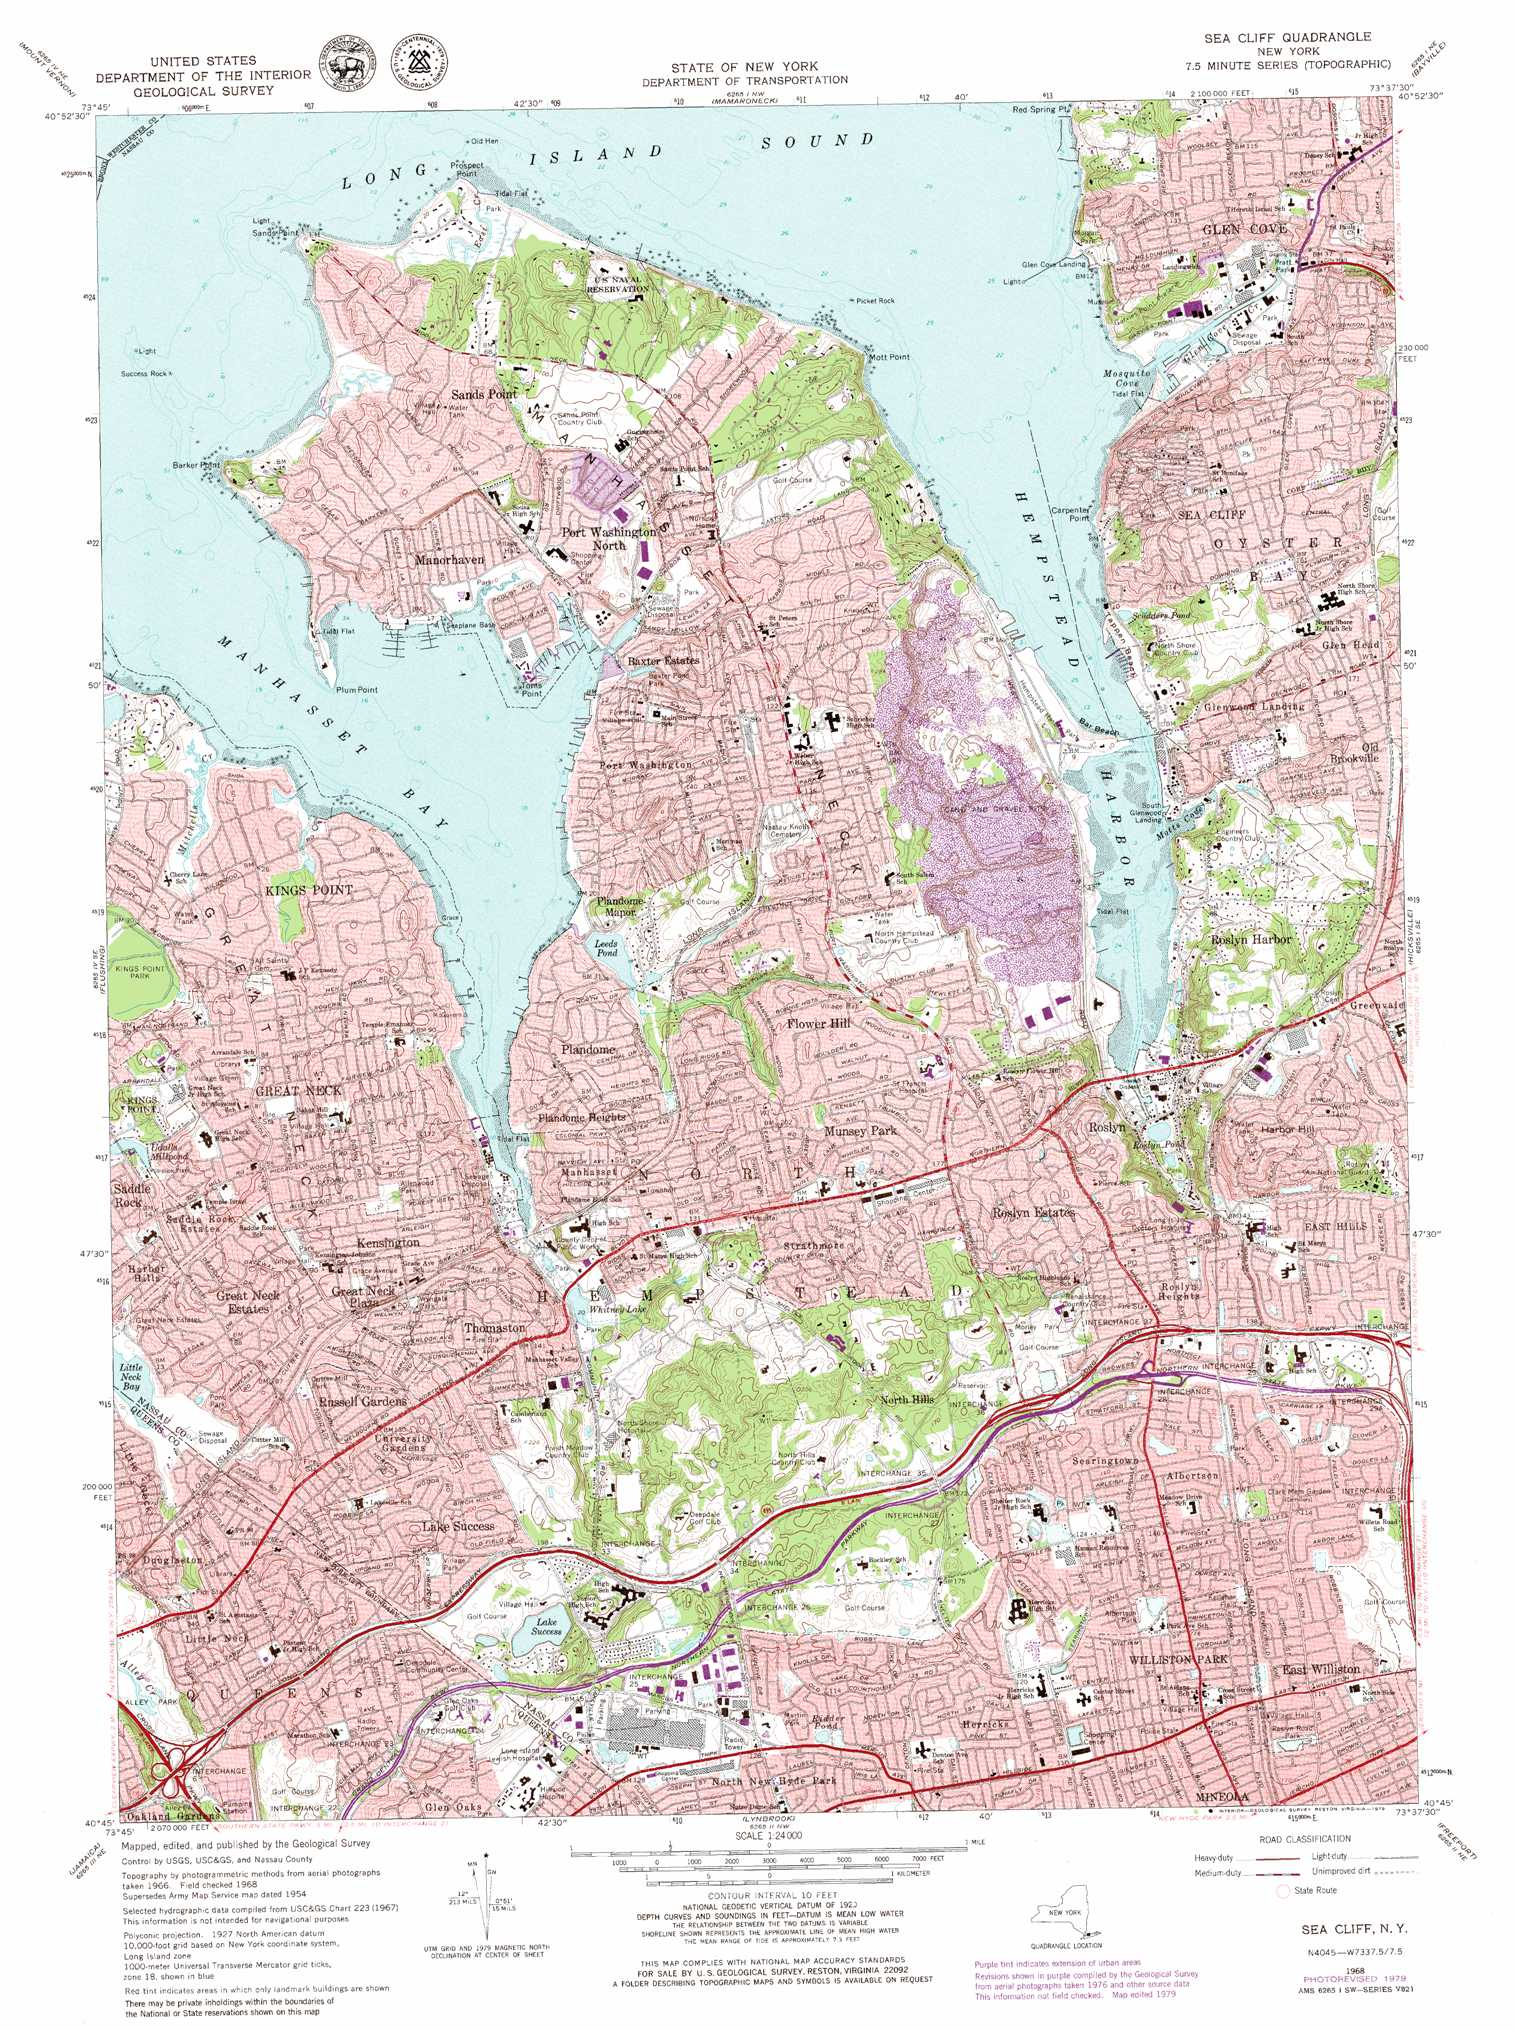 Cliff On A Topographic Map.Sea Cliff Topographic Map Ny Usgs Topo Quad 40073g6